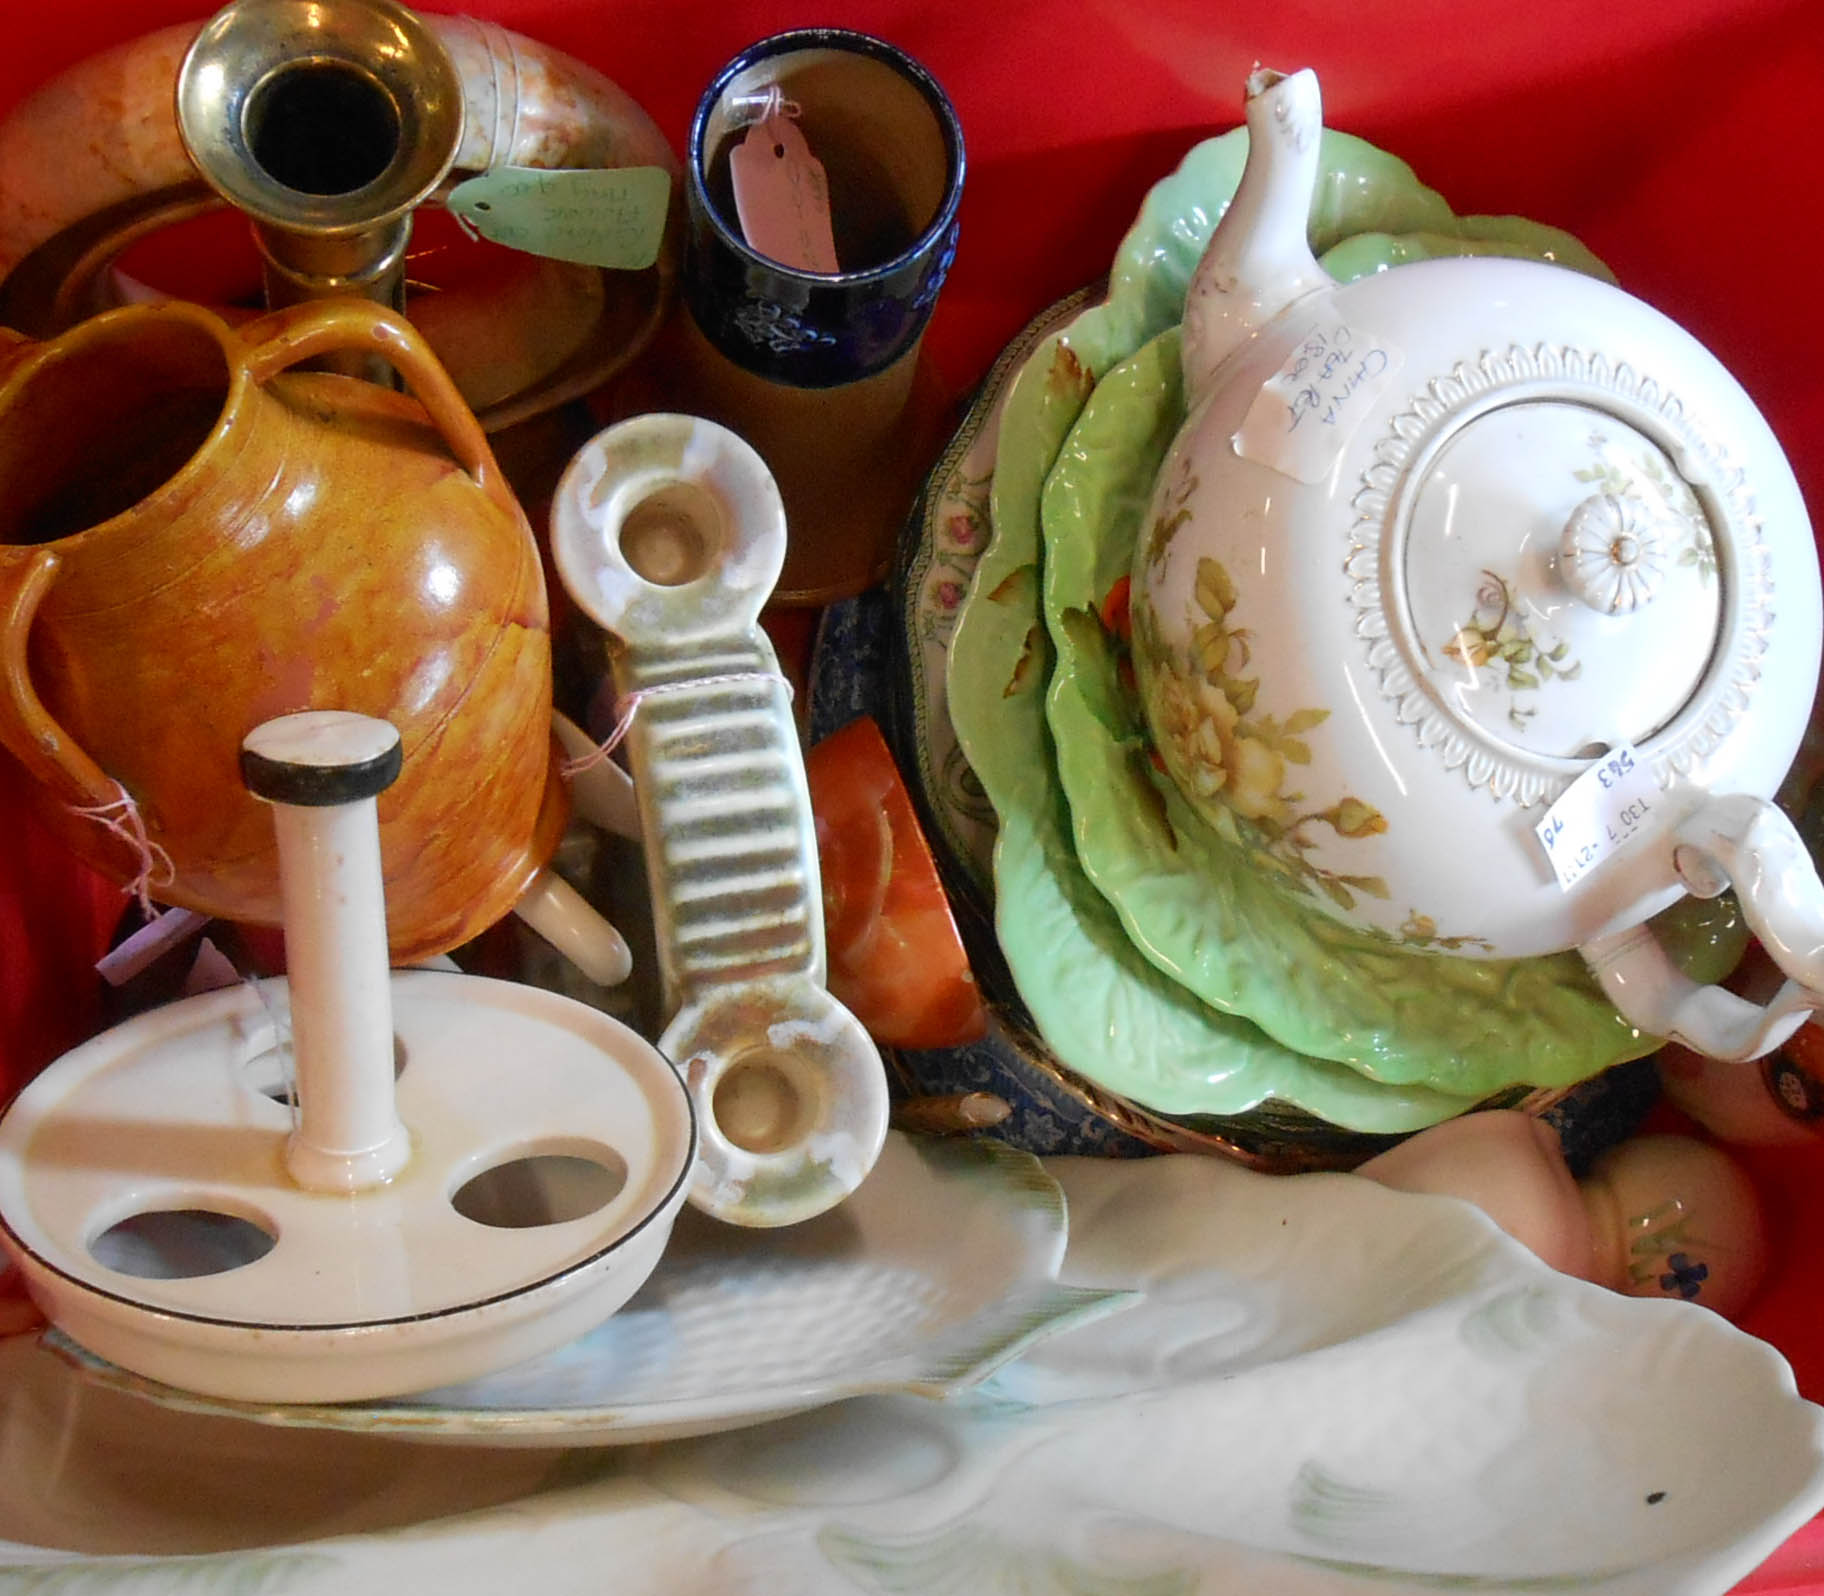 A crate containing assorted ceramic and other items including Shorter fish dishes, Royal Doulton